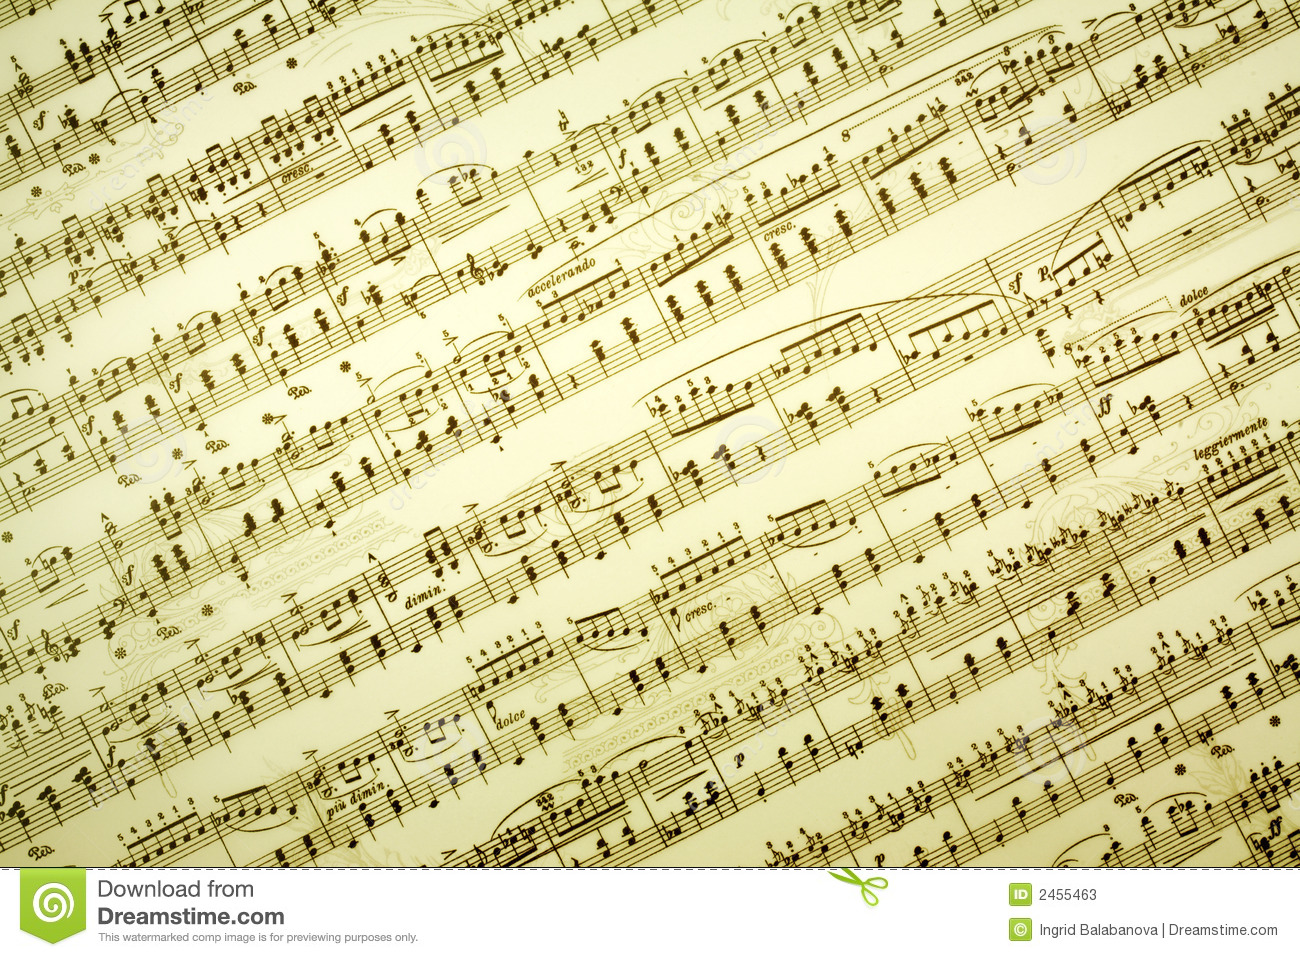 Vintage Music Note Wallpapers For Android Harmony: Music Notes Background Stock Image. Image Of Composition